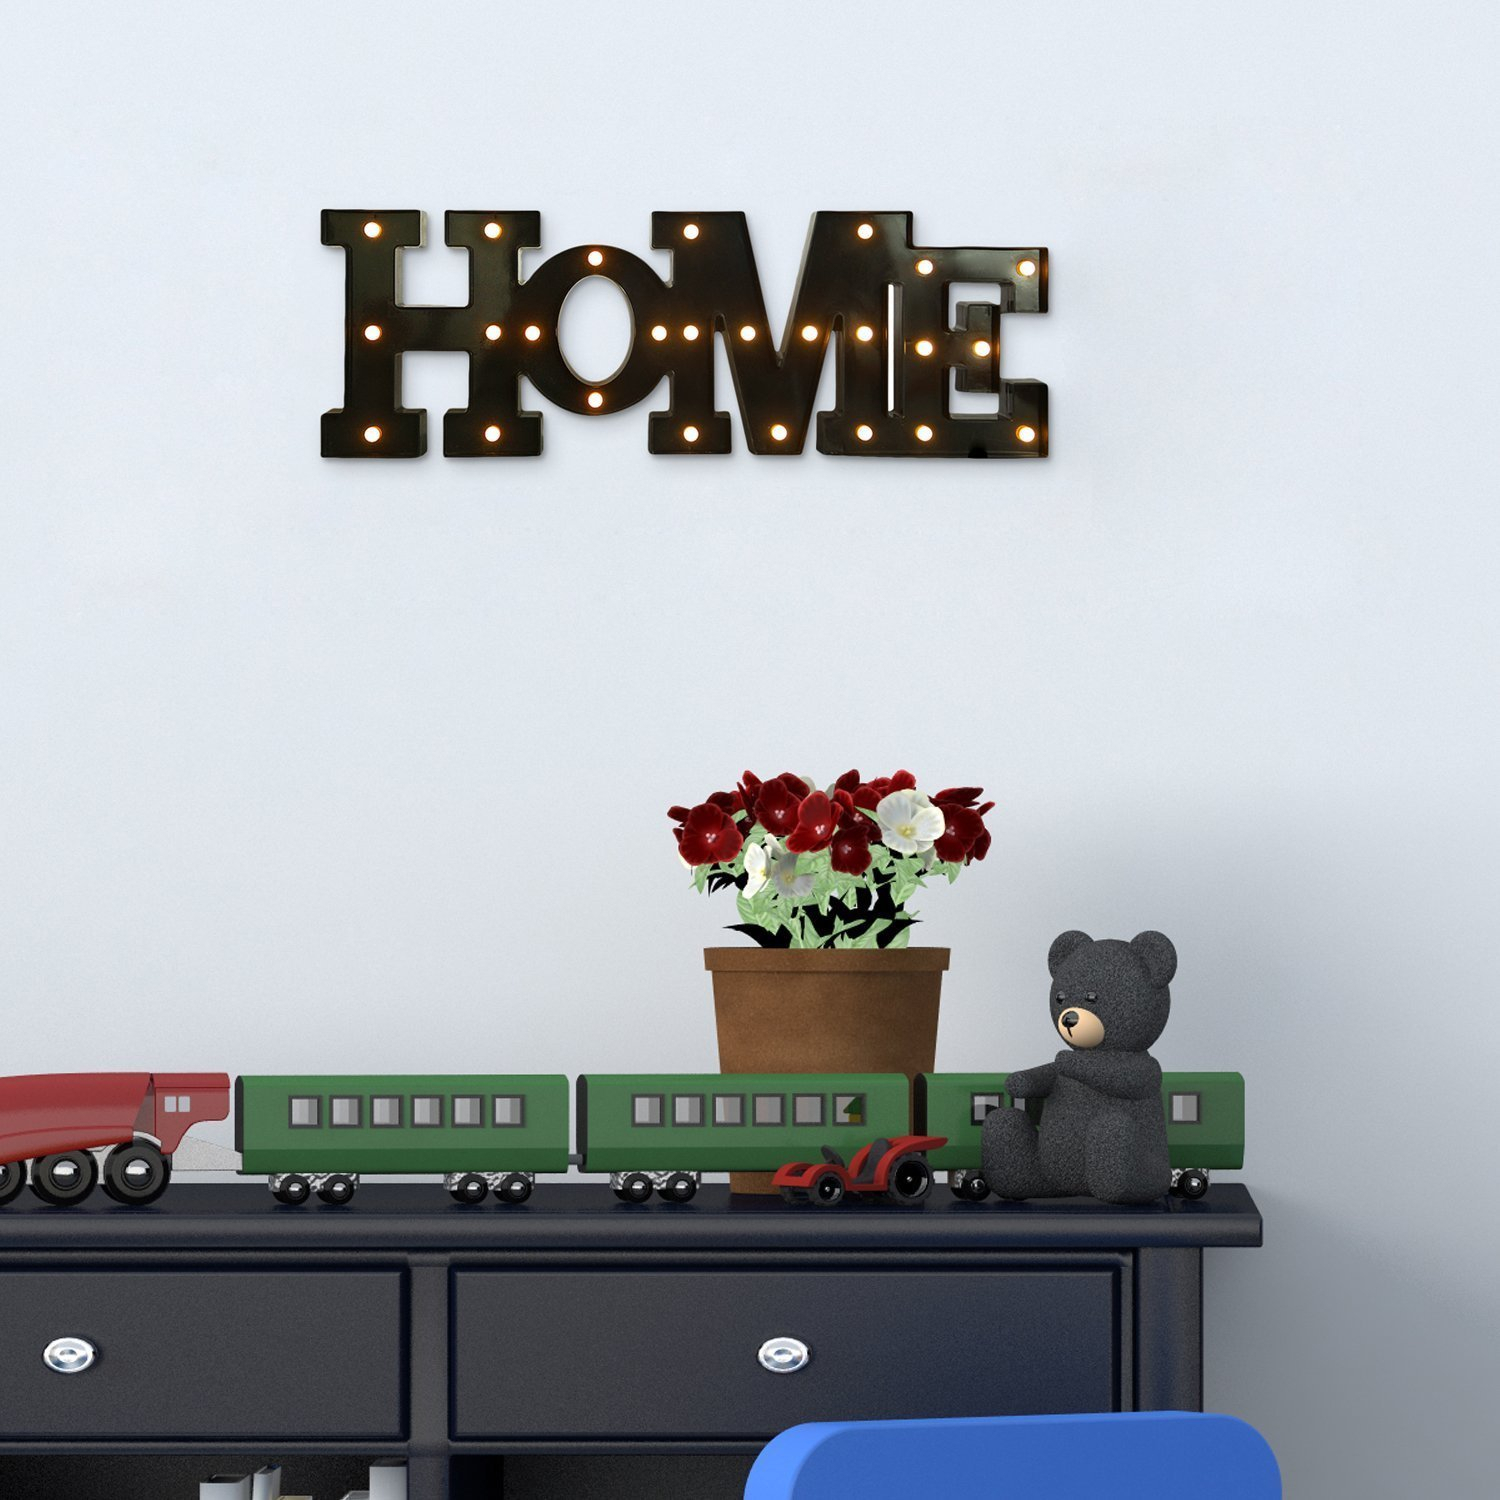 Wall Art Home Decor (View 17 of 20)